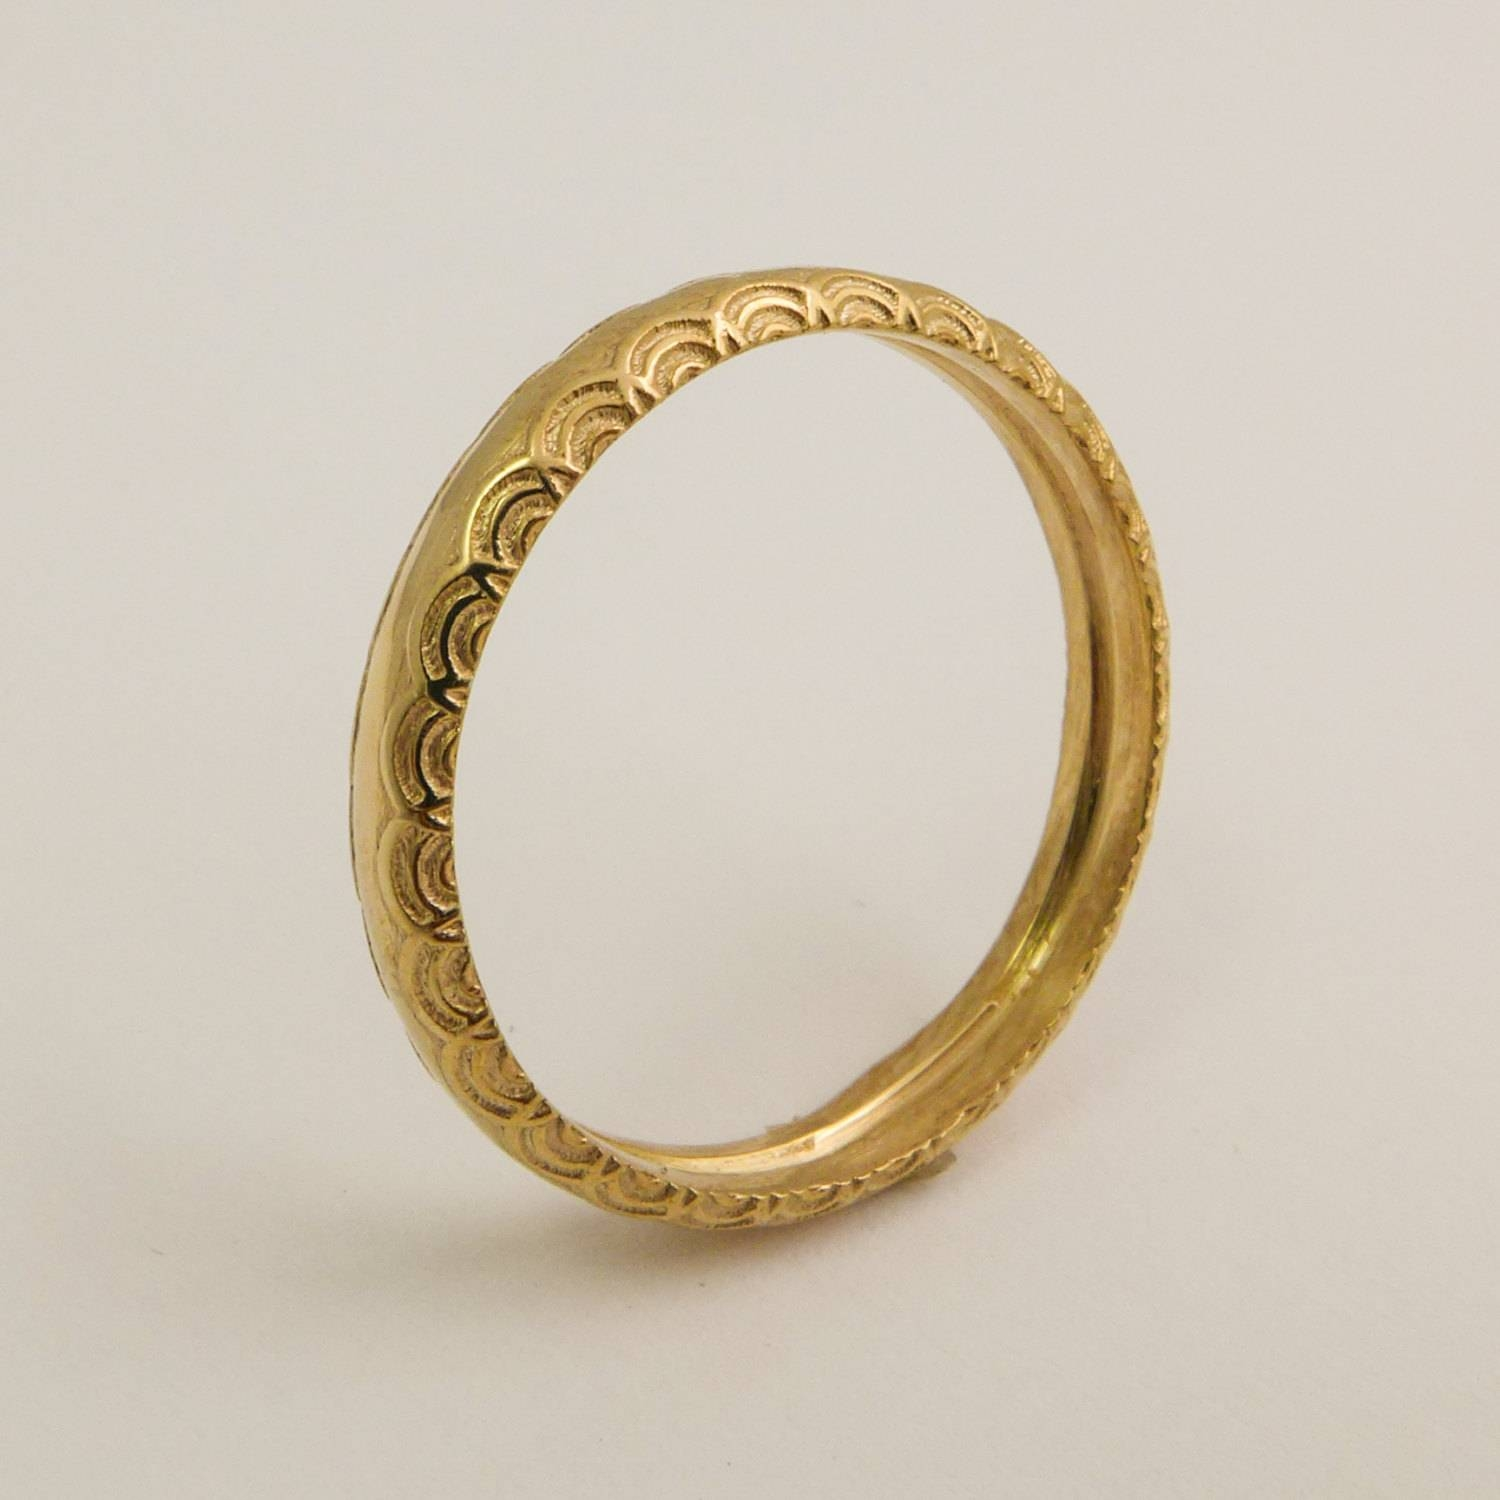 14 Karat Gold Simple Wedding Ring For Women Gold Ring With In 14 Carat Gold Wedding Bands (View 12 of 15)